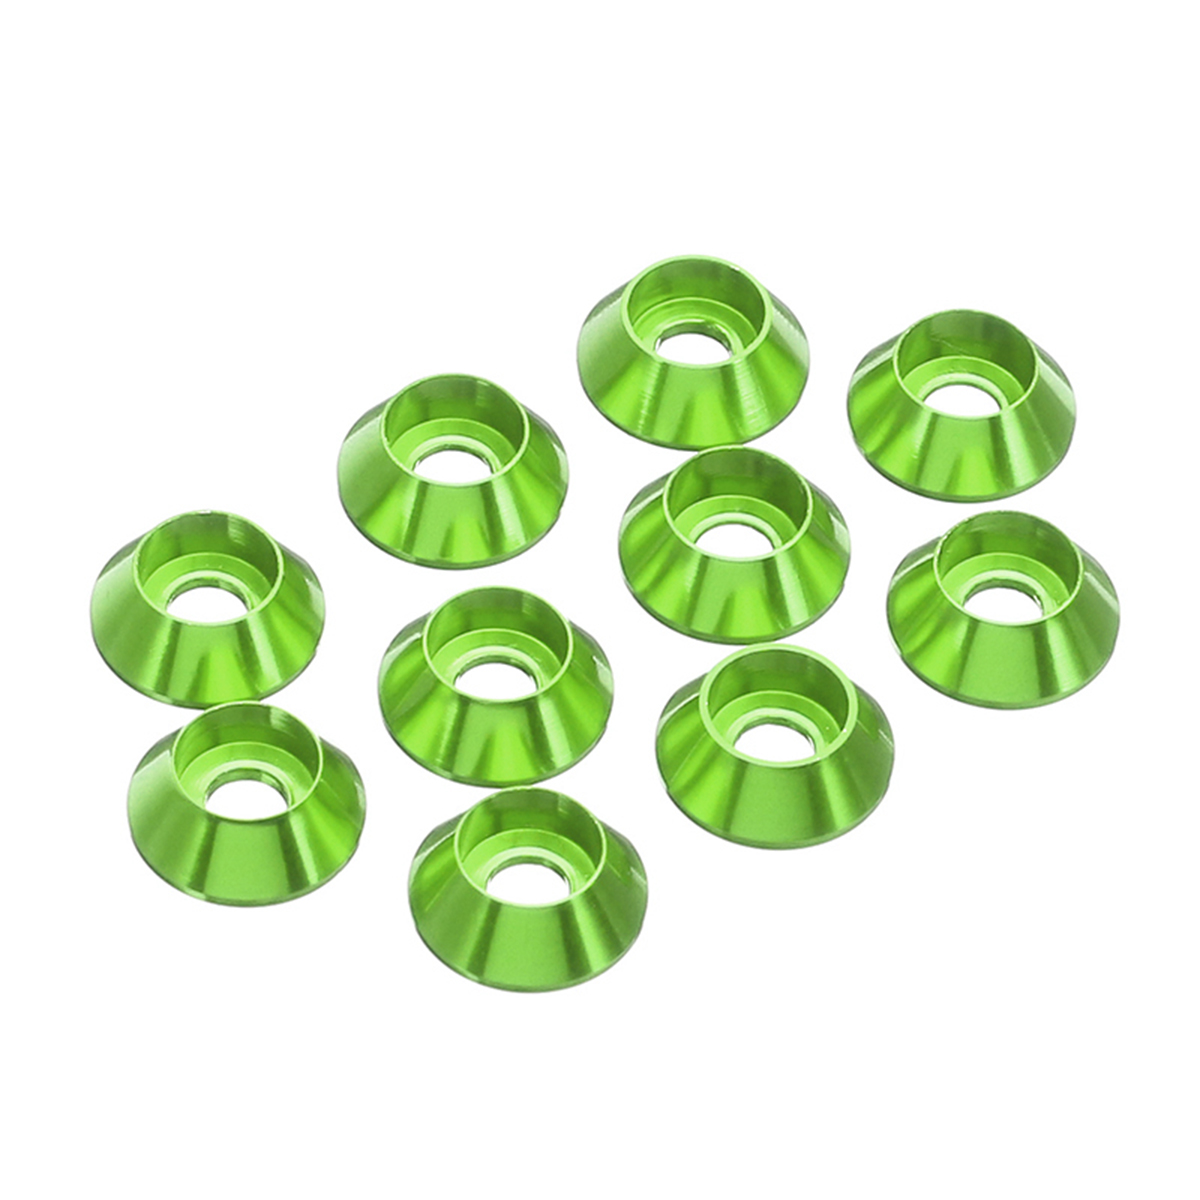 Suleve™ M6AN1 10Pcs M6 Cup Head Hex Screw Gasket Washer Nuts Aluminum Alloy Multicolor